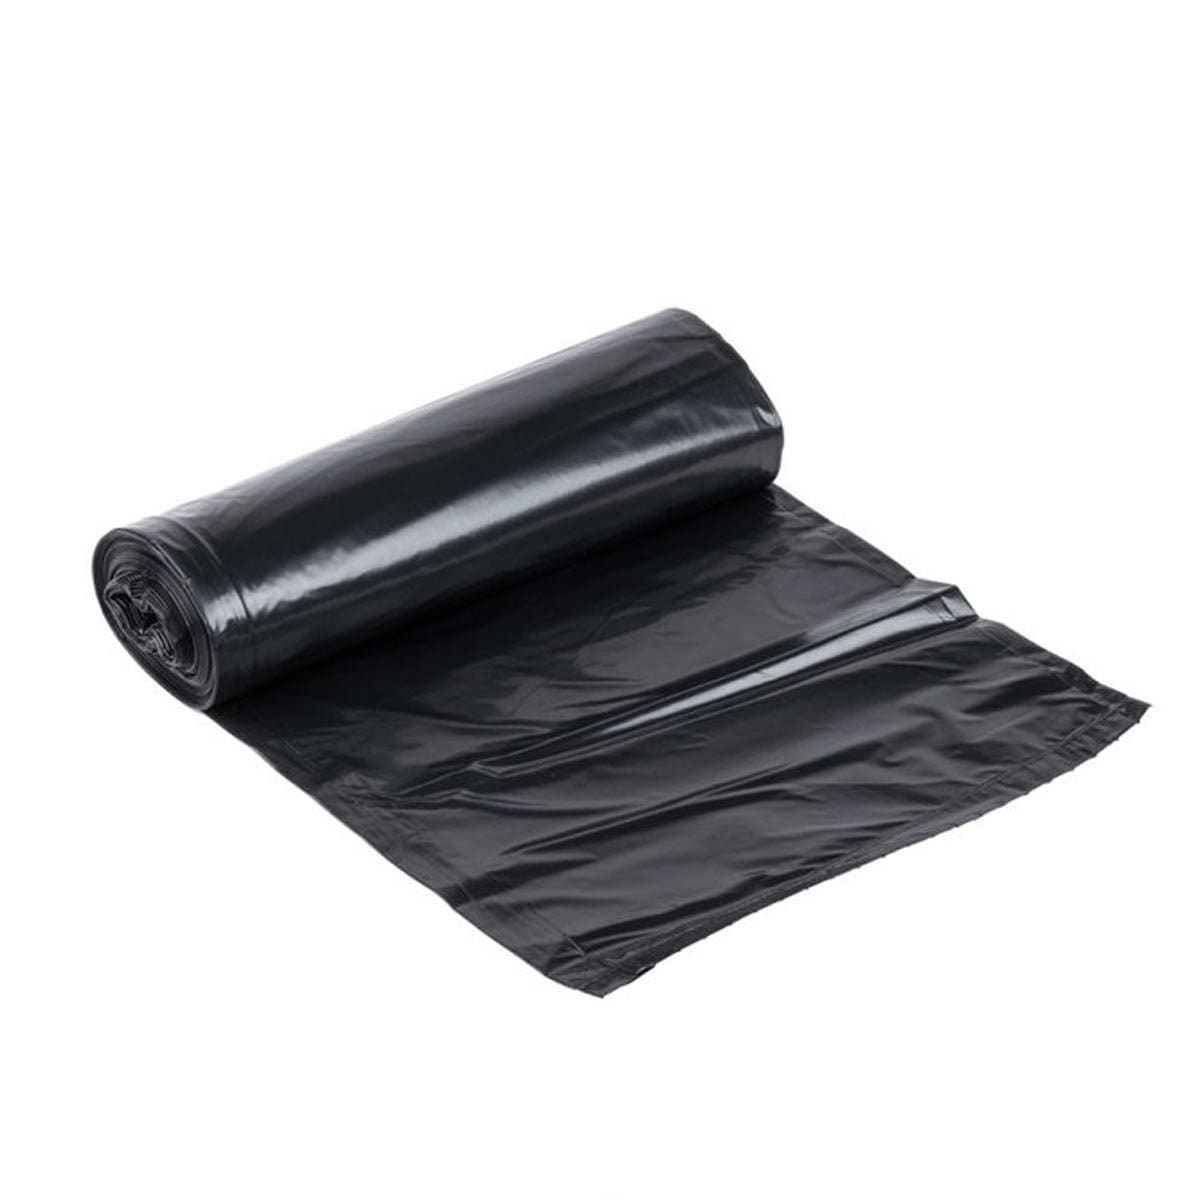 ANEKA Garbage Bag 22X33 15PCS